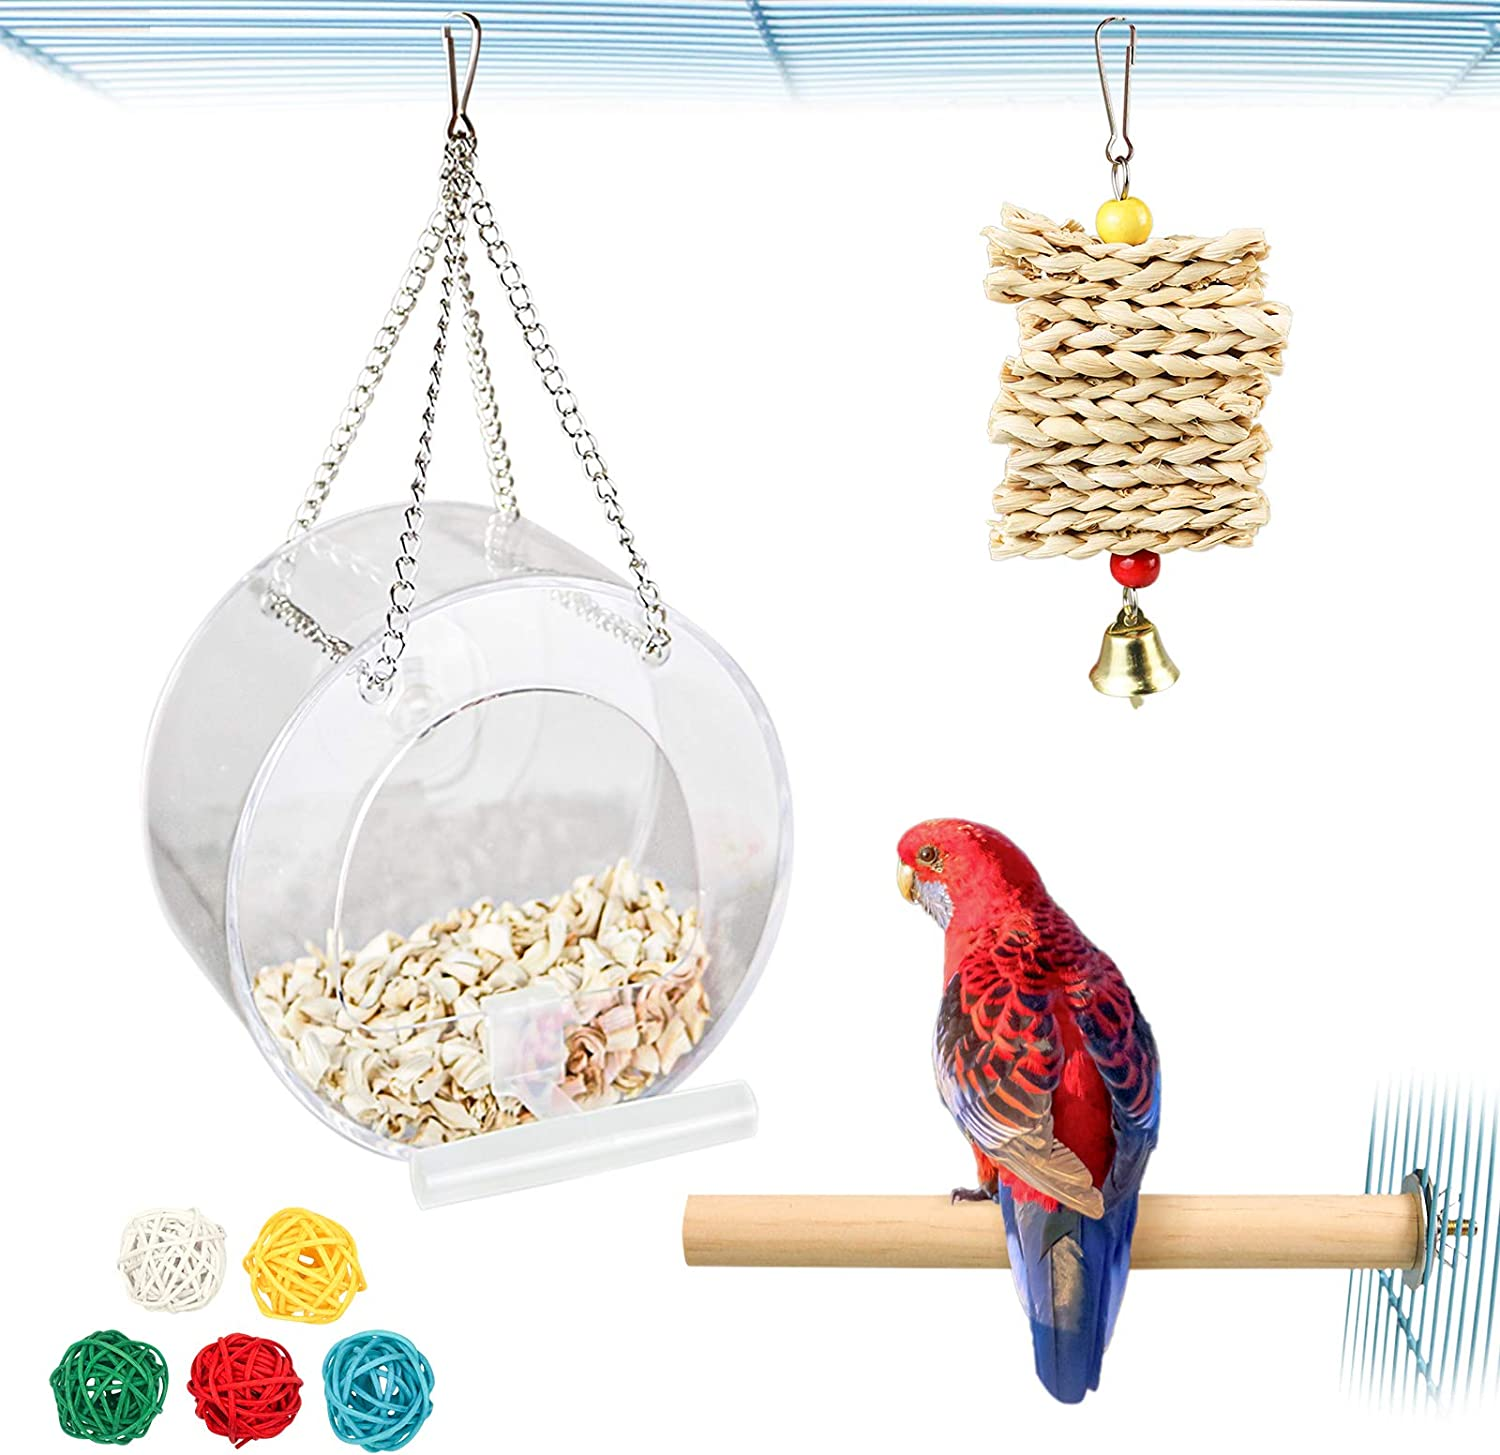 4 Pieces Acrylic Round Hanging Bird Feeder with Chain,Parrot Perch,Parrot Chew Toys,5 Colorful Vine Balls for Small or Medium Parakeet,Lovebird,Canaries,Conure,Budgie (Style-1)